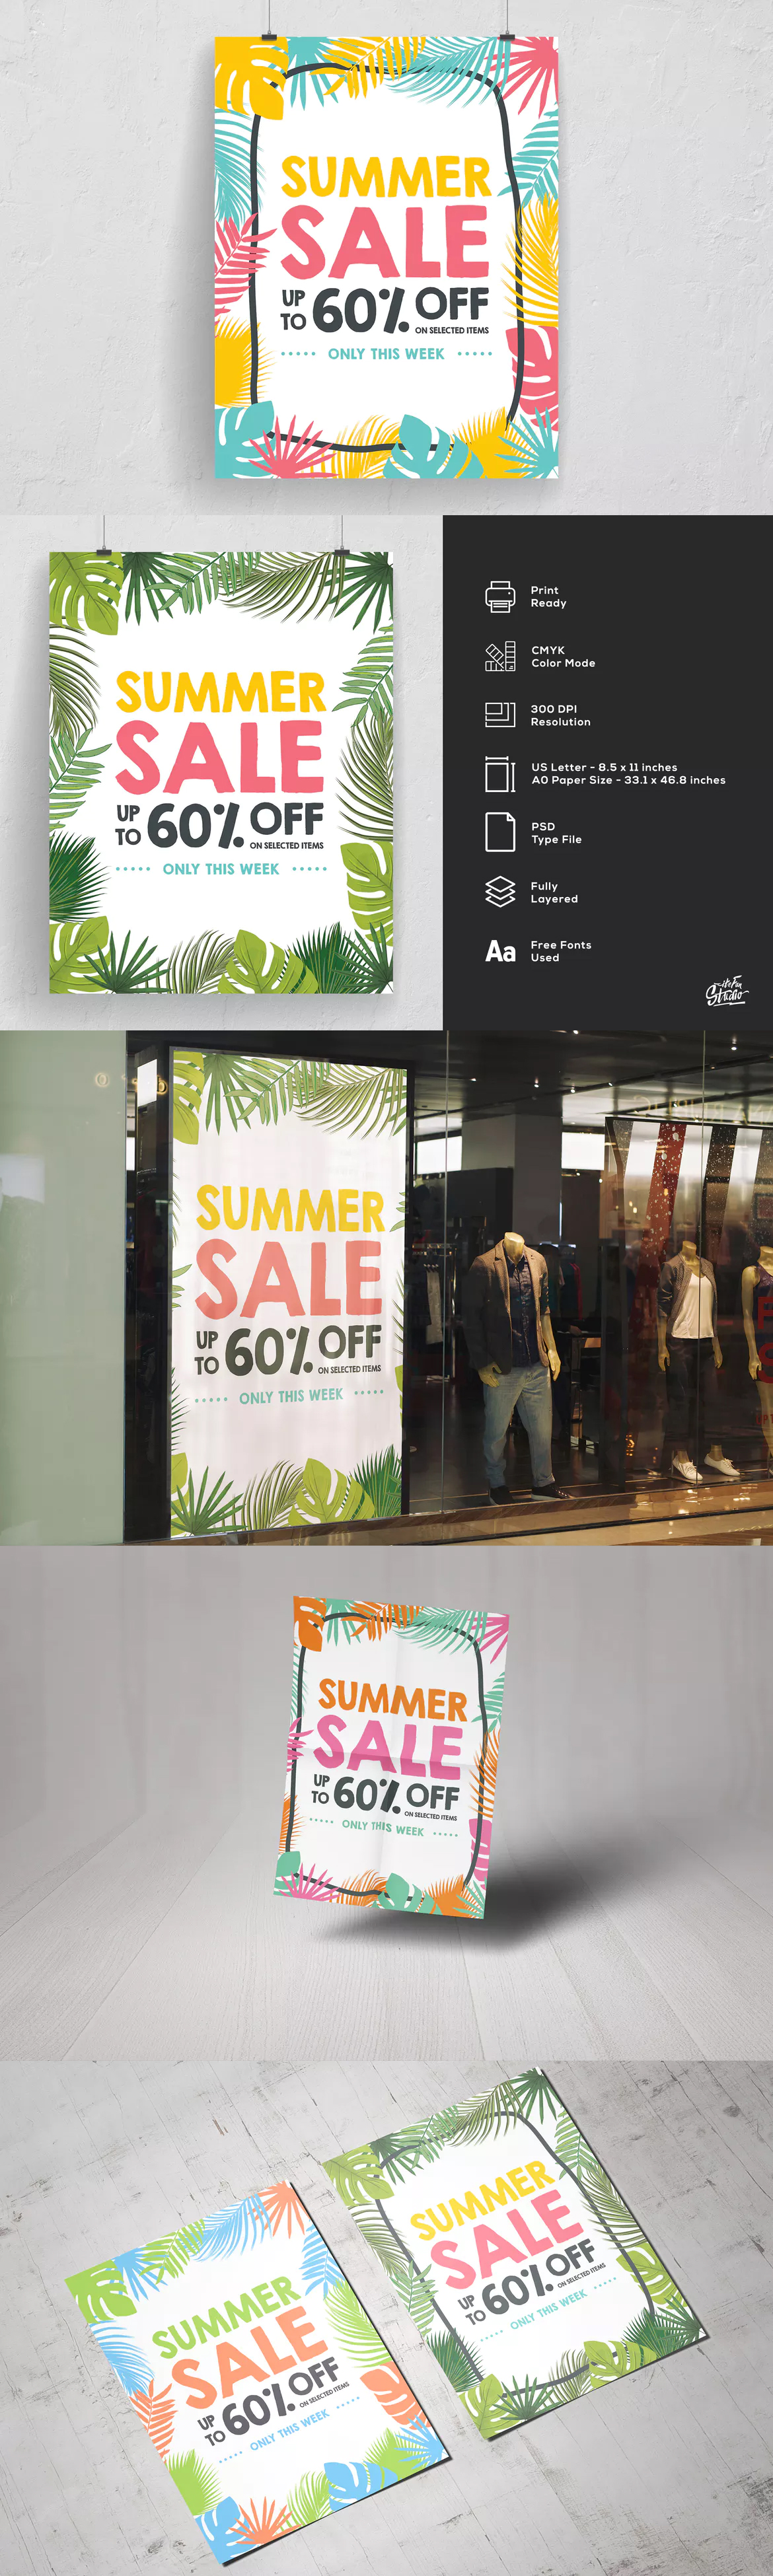 Palm Leaves Summer Sale Poster And Flyer Template PSD | Flyer ...